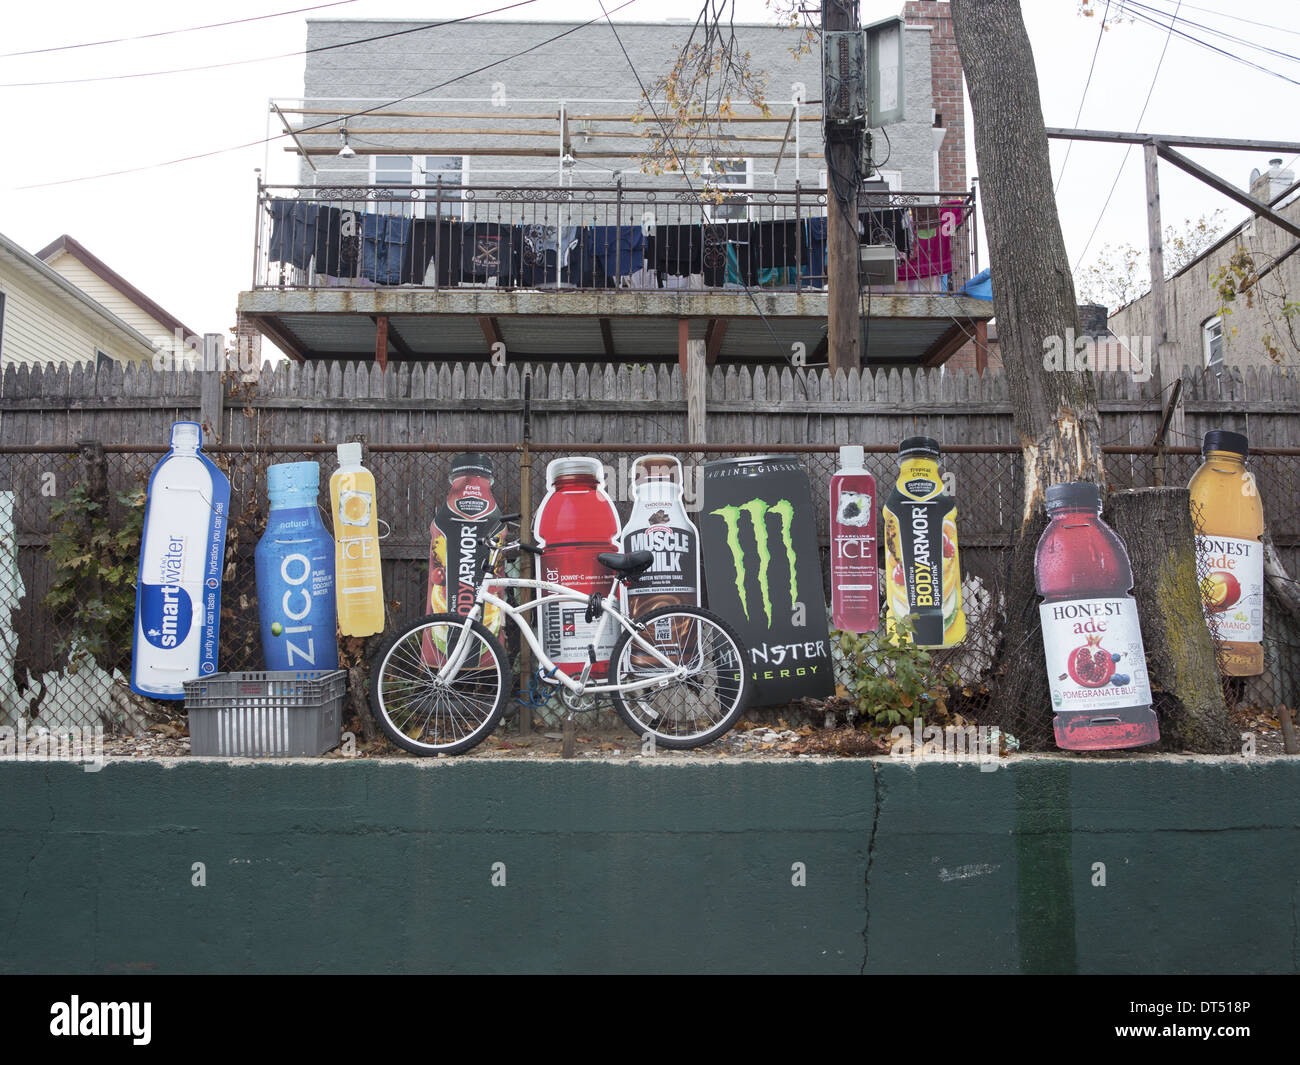 Product cutouts in the parking lot of a neighborhood market in Brooklyn, New York. - Stock Image